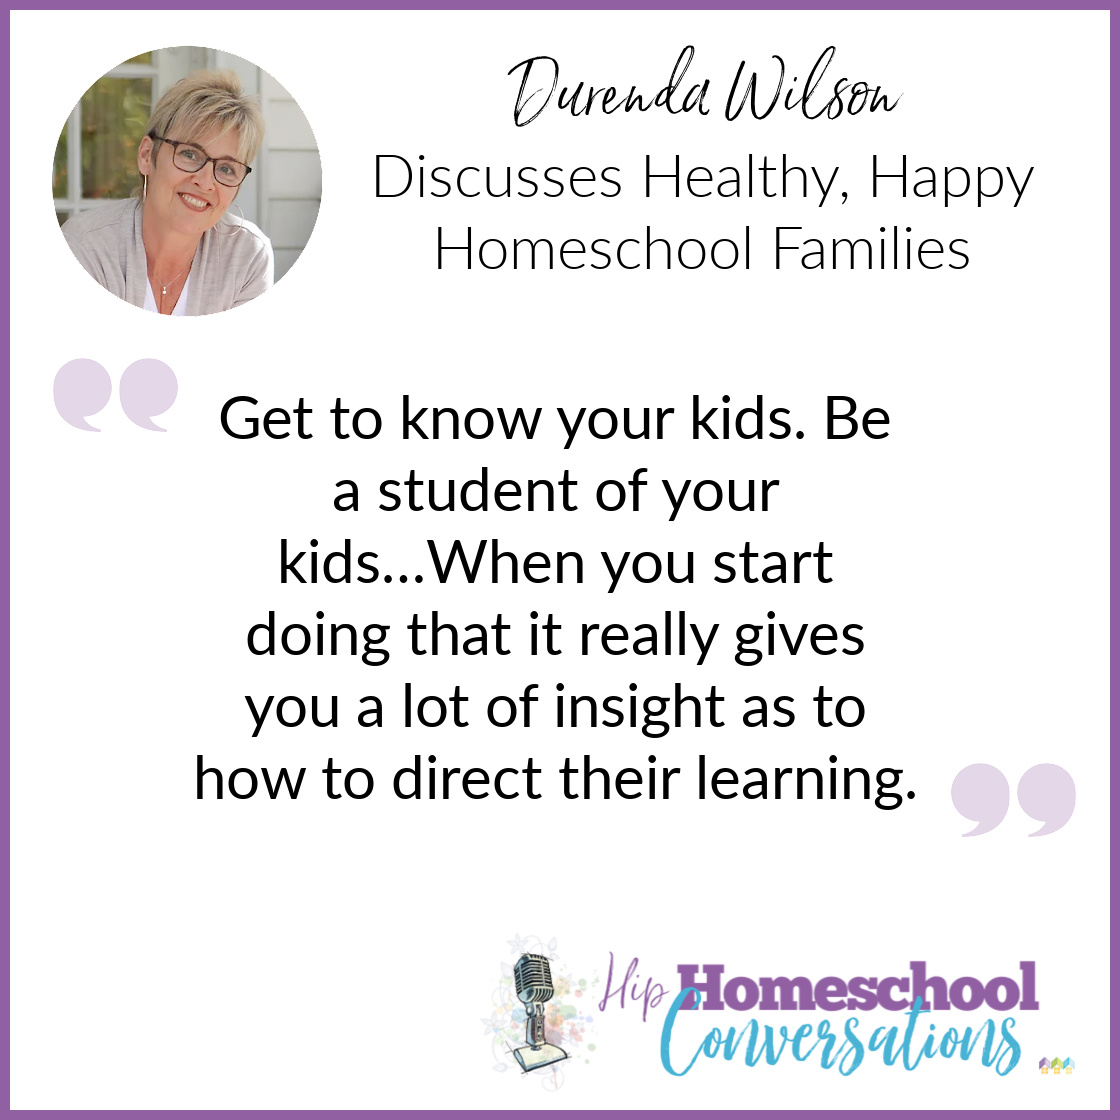 Join us to hear about Durenda's belief in being the expert on your own children, her emphasis on flexible routines, and how fostering strong sibling relationships can all improve the homeschooling family life and, in fact, the culture around us.